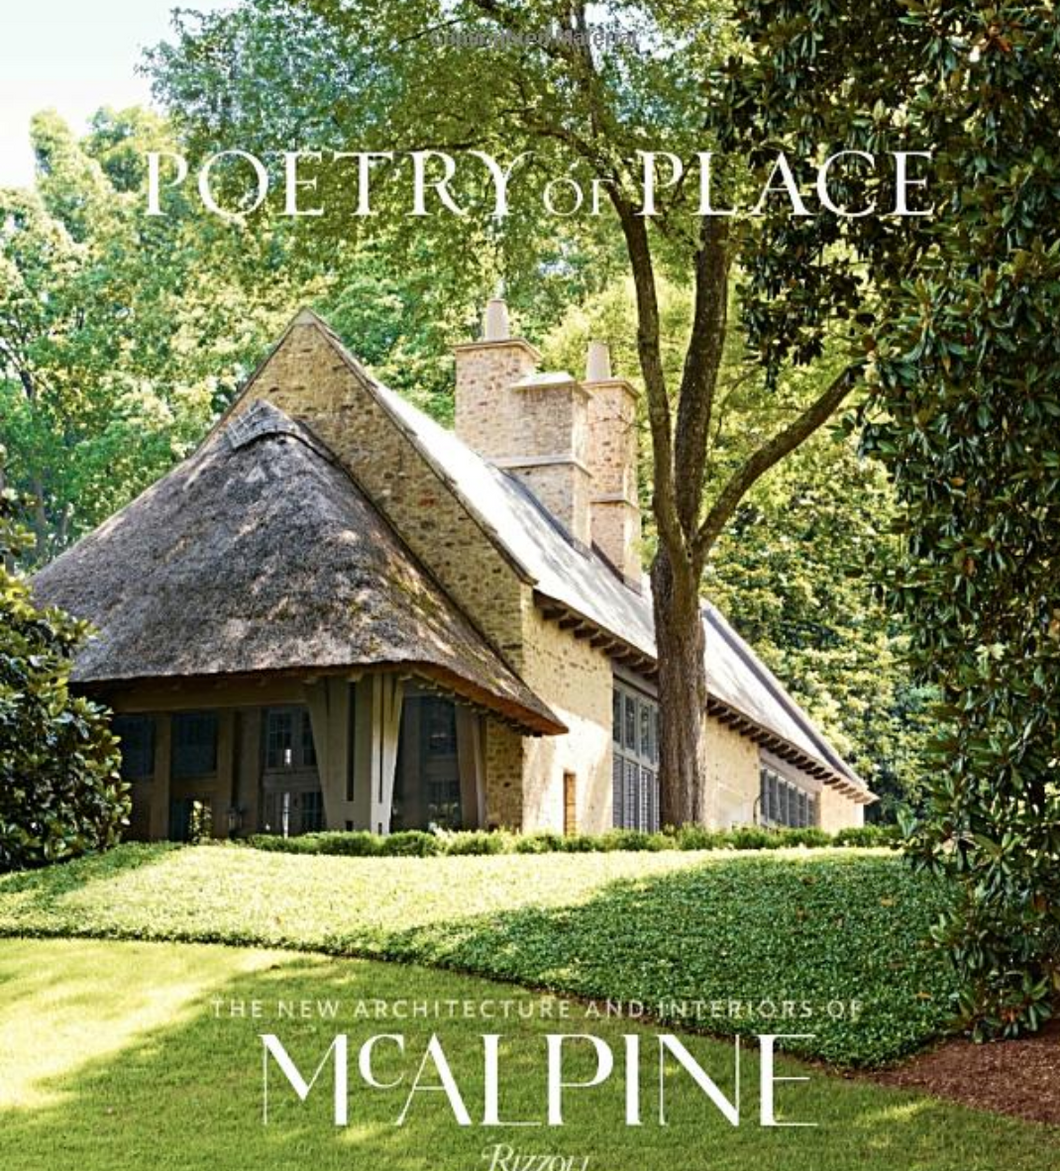 Poetry of Place Book by McAlpine